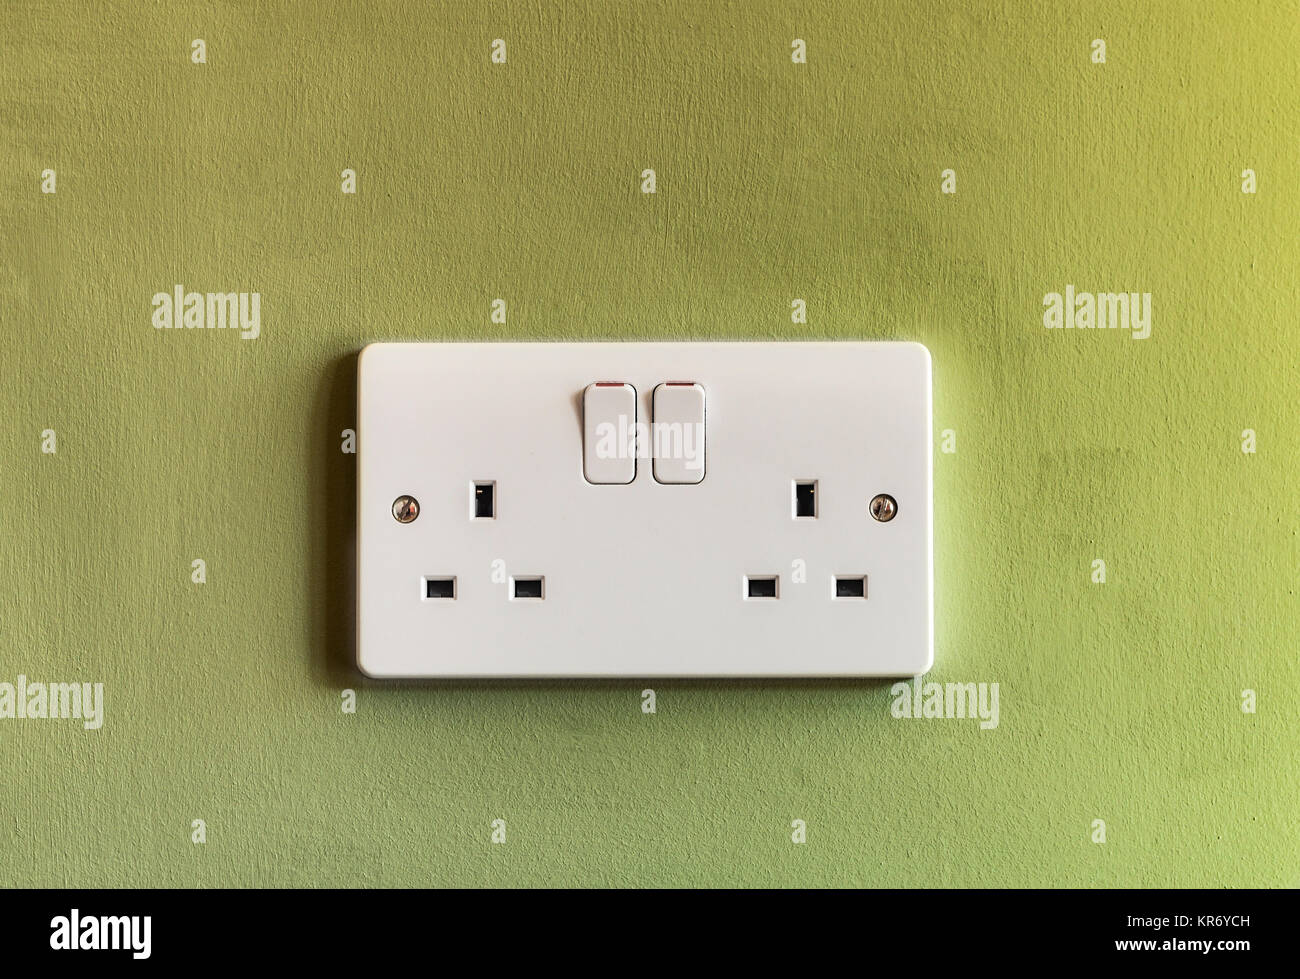 UK domestic 3 pin double plug electrical socket in white plastic on a green coloured wall - Stock Image